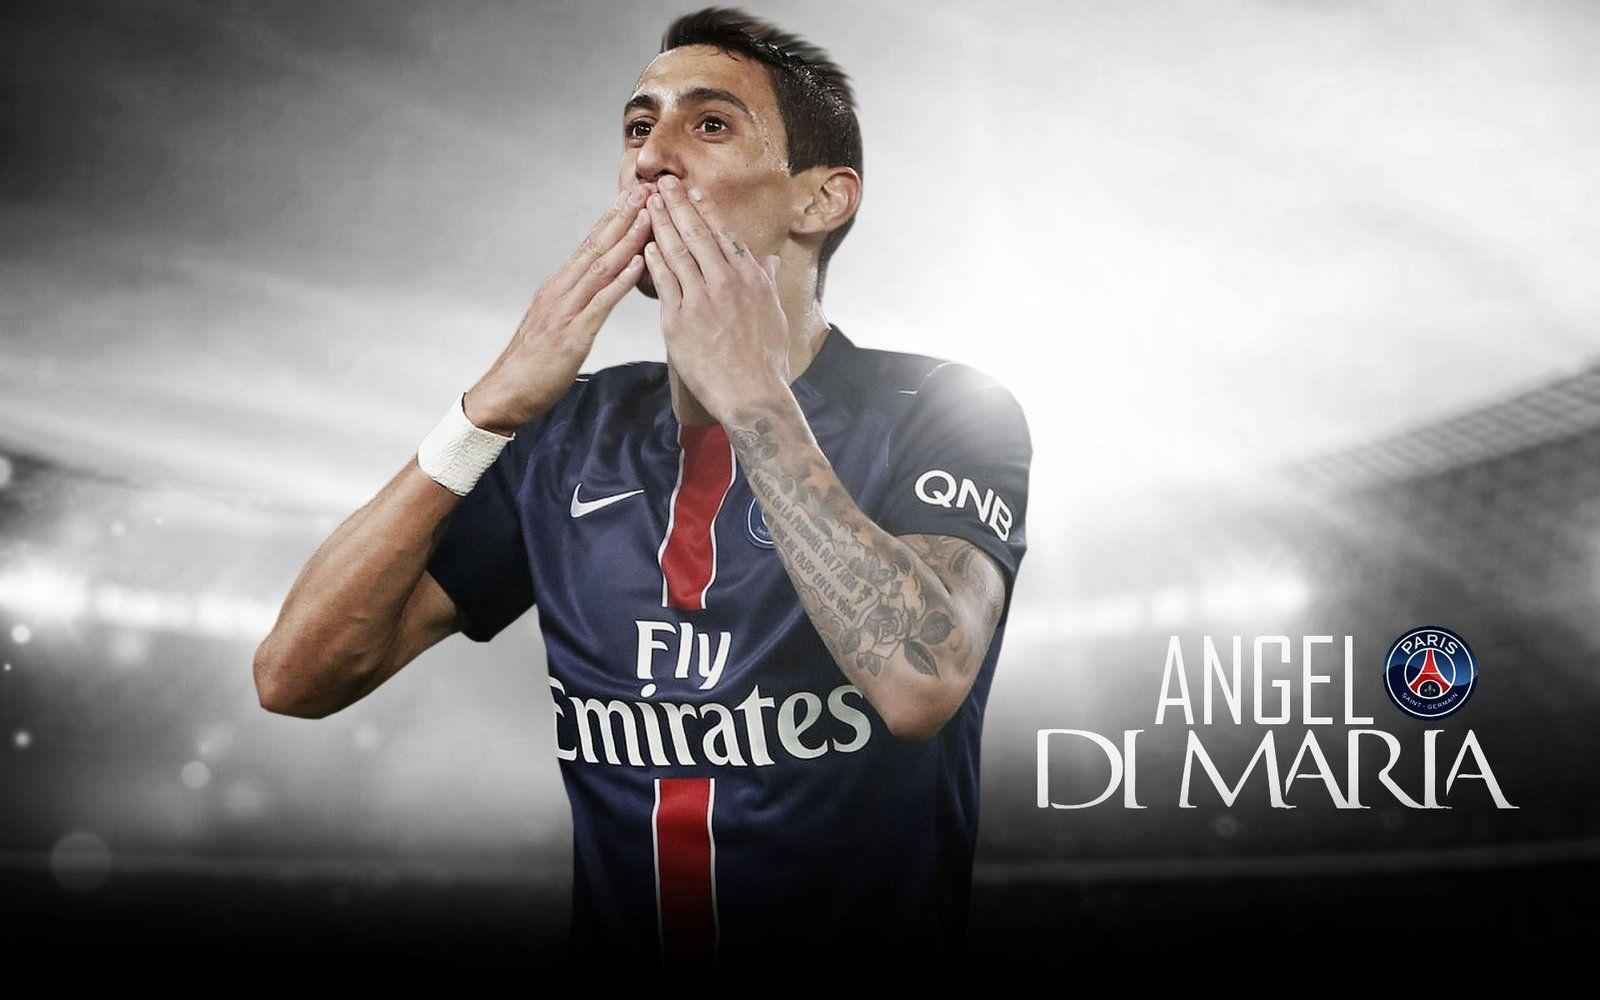 ángel Di María Wallpapers Wallpaper Cave